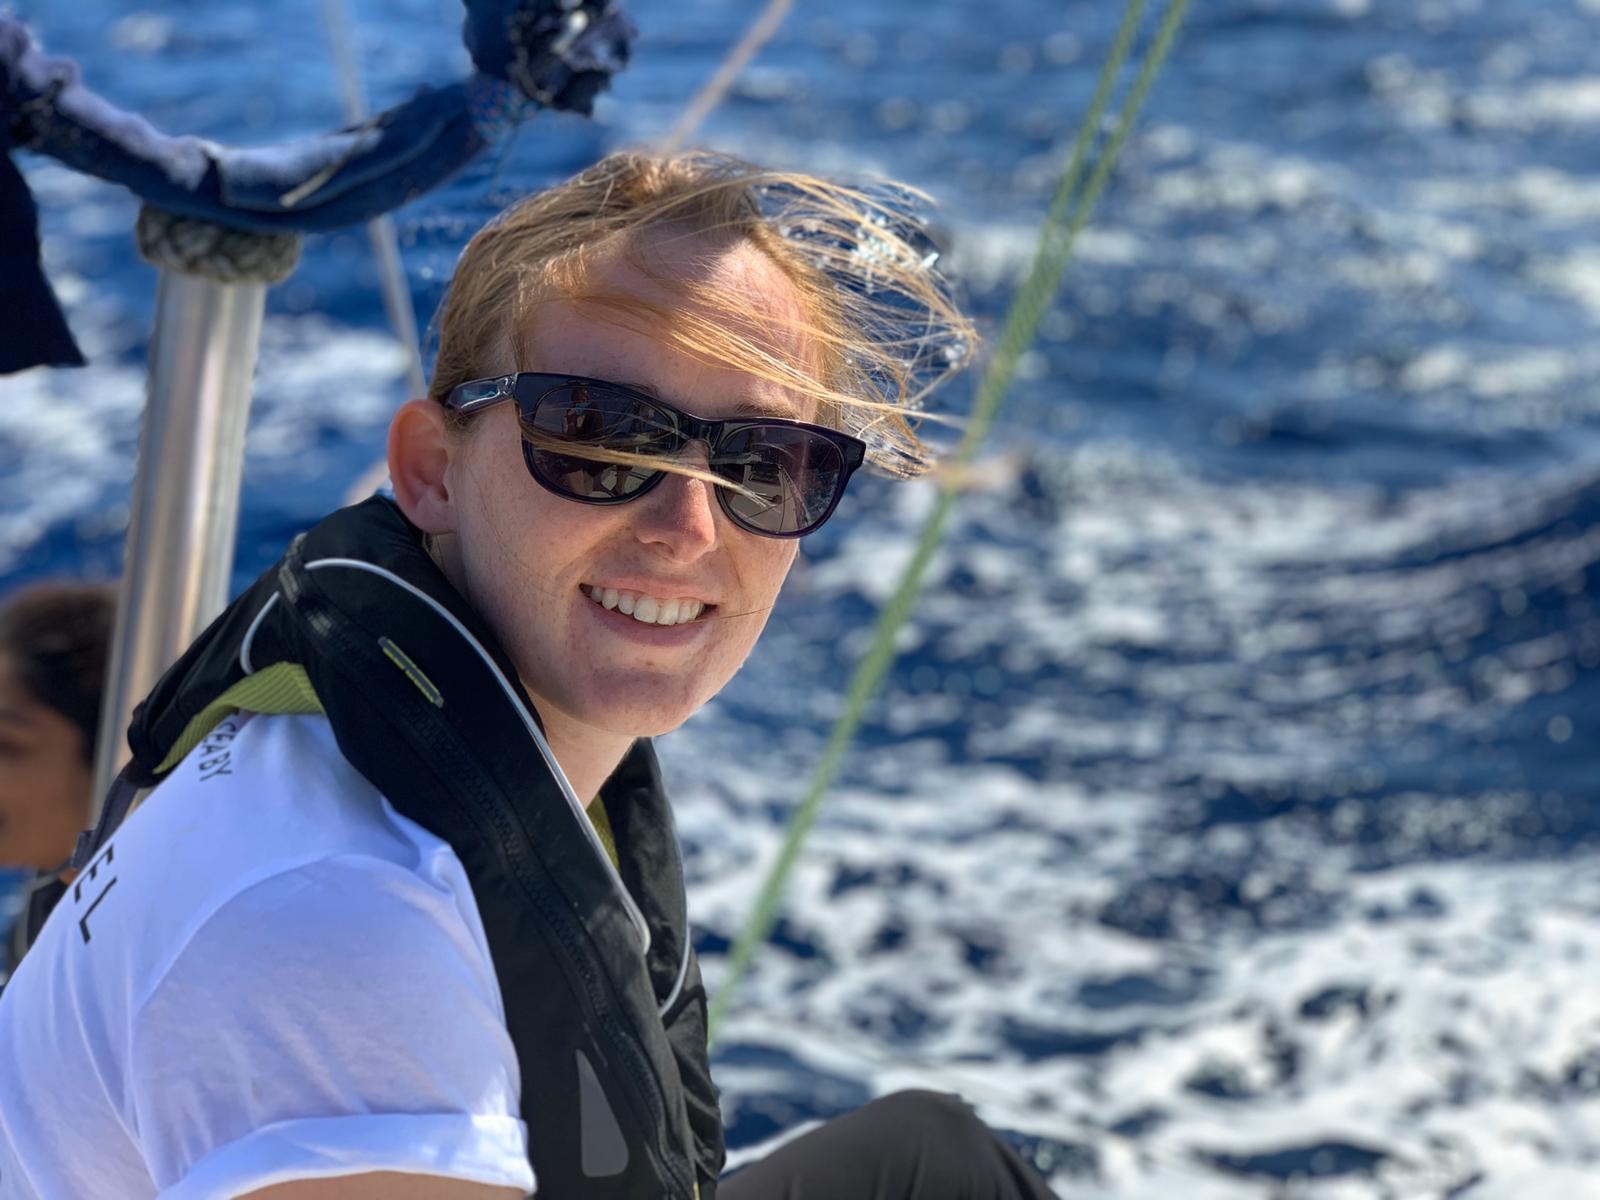 'If I can sail across the Atlantic Ocean, I can do anything': Scots crew members on round-the-world plastic pollution yacht mission share their experiences